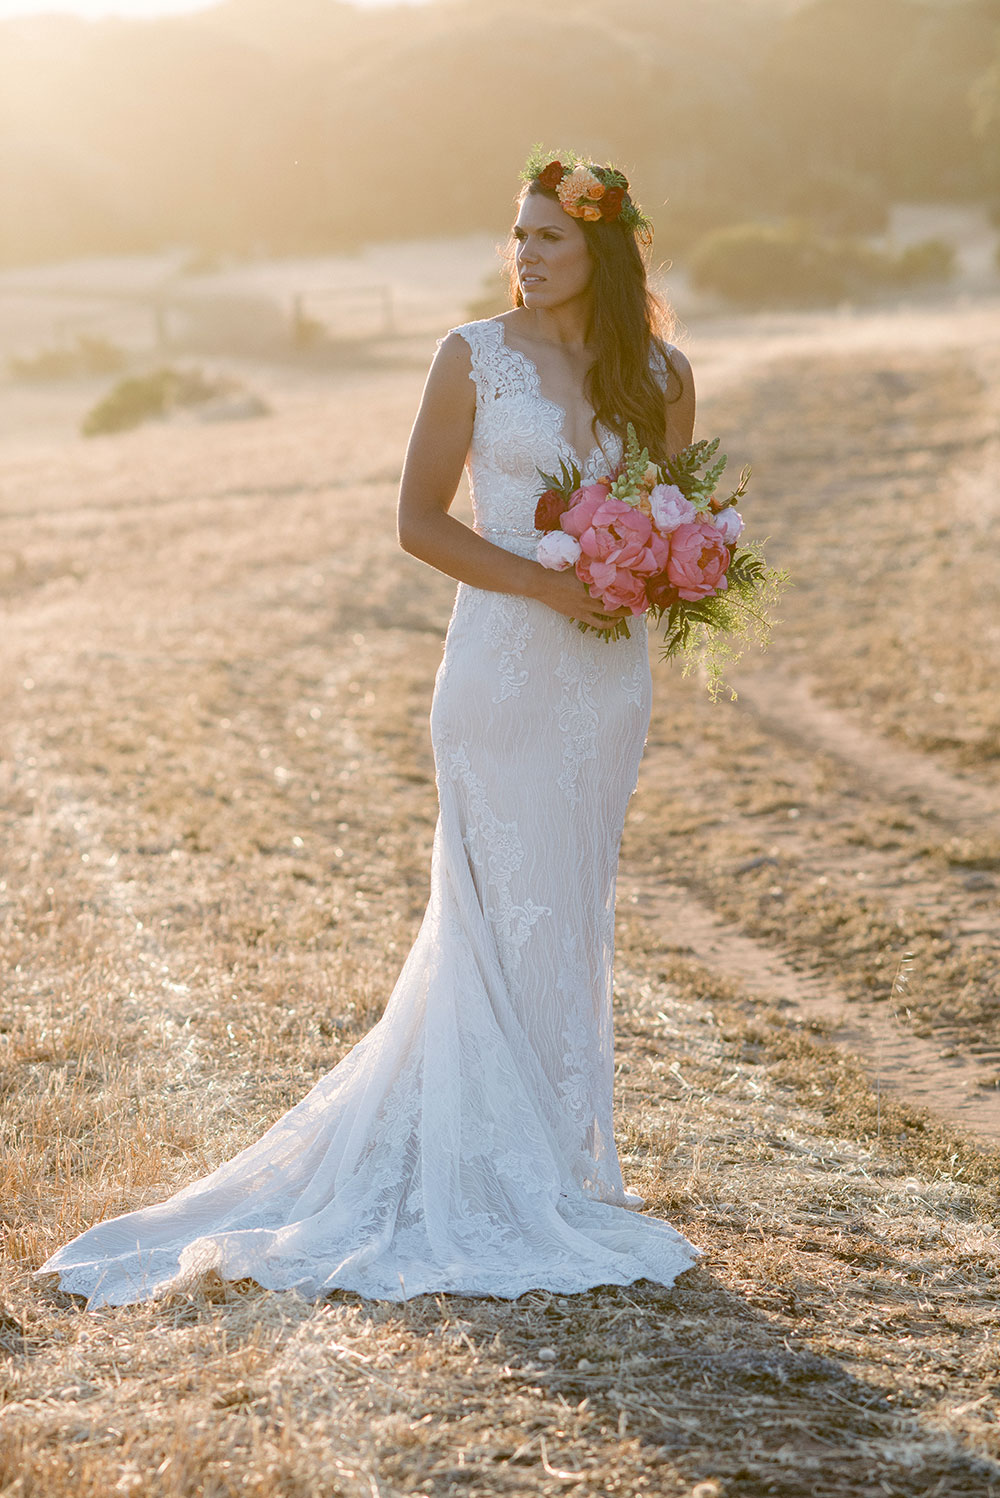 Dion For Brides - Dion For Brides, located in North Perth, stocks a range of premium designers that appeal to the modern bride such as Maggie Sottero and Galia Lahav.READ MORE...